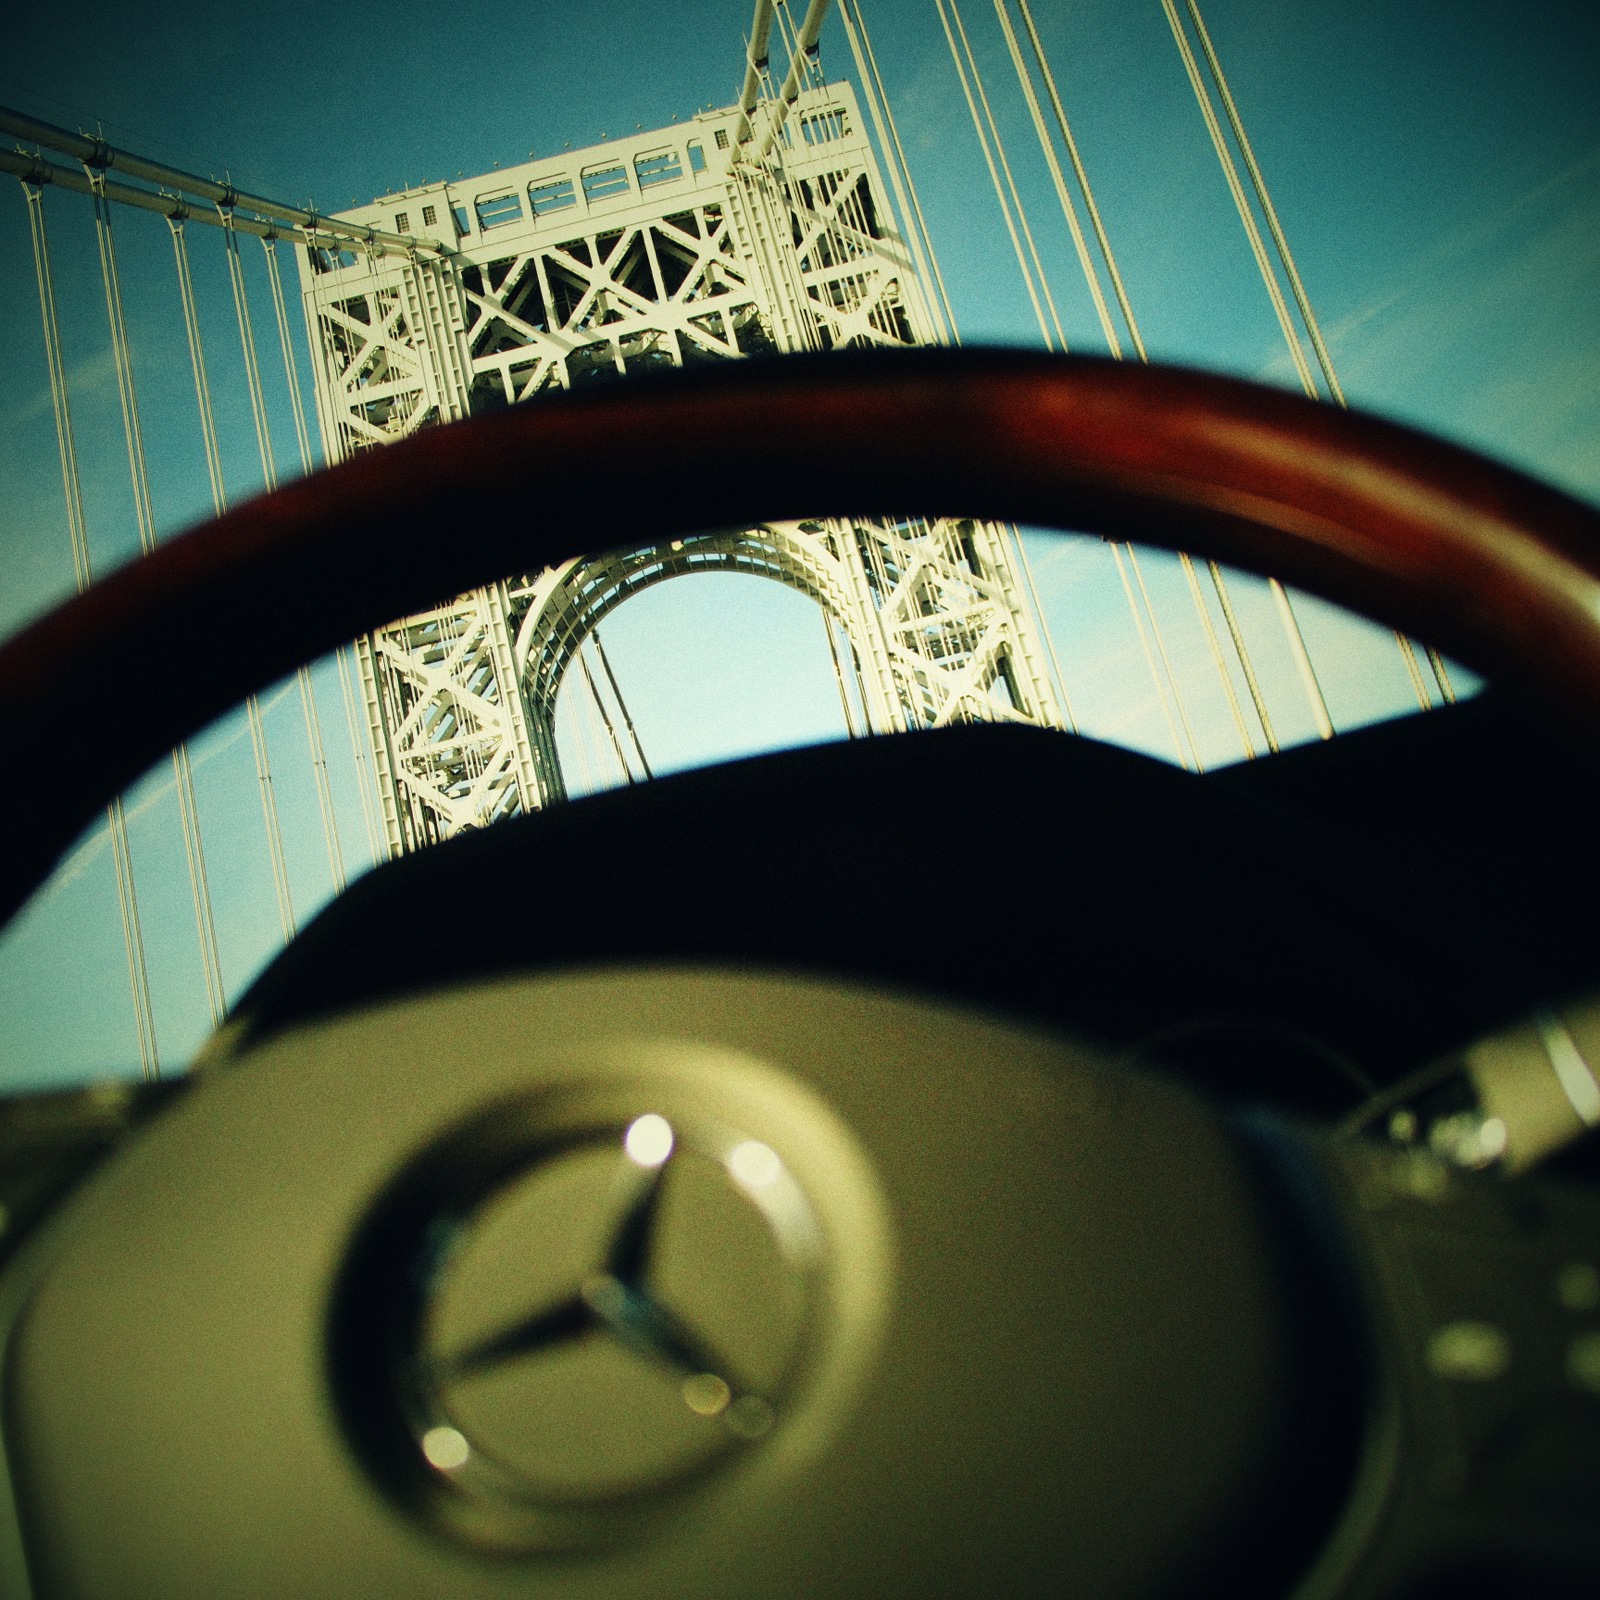 Mercedes-Benz photo in New York going over the George Washington bridge, shot on a Micro four thirds camera